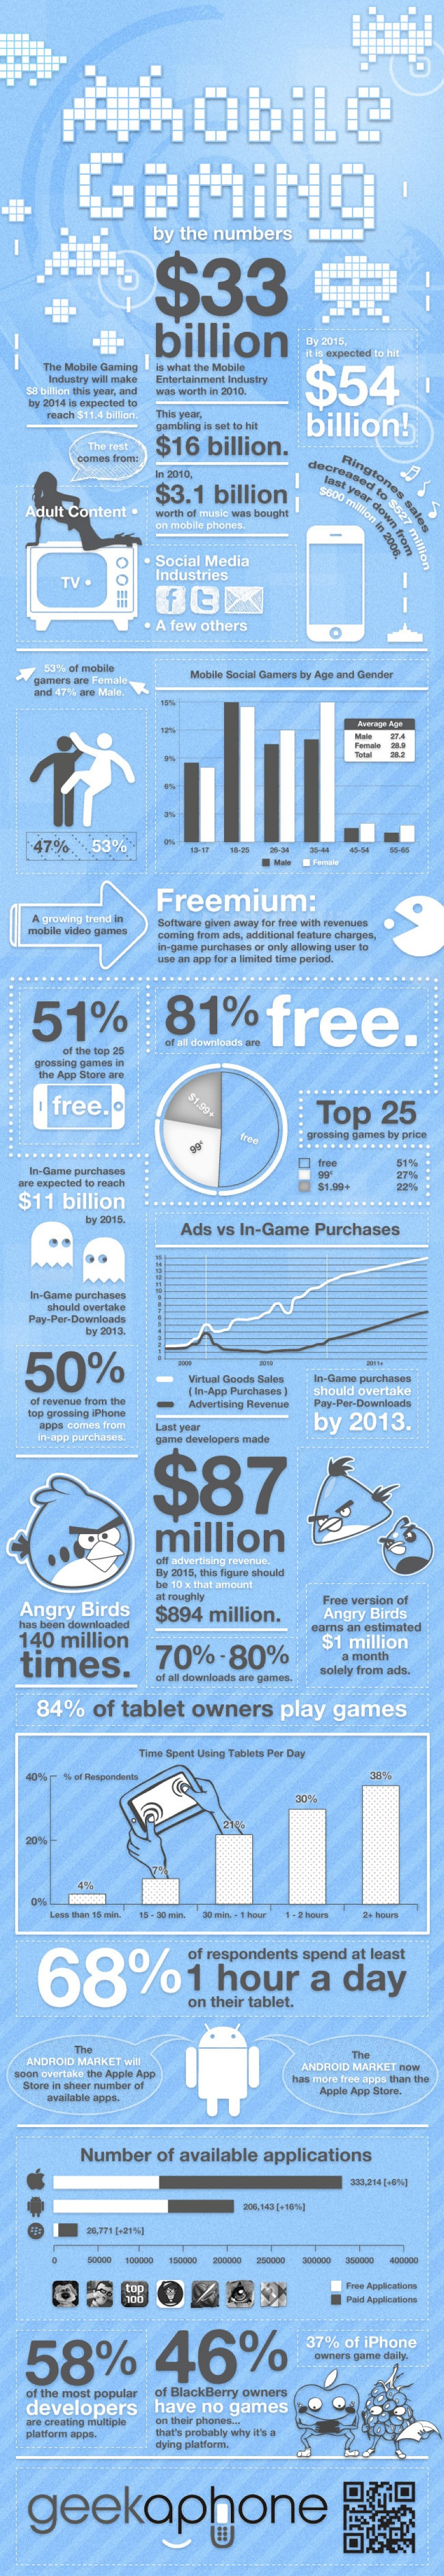 7. Ages of mobile gaming